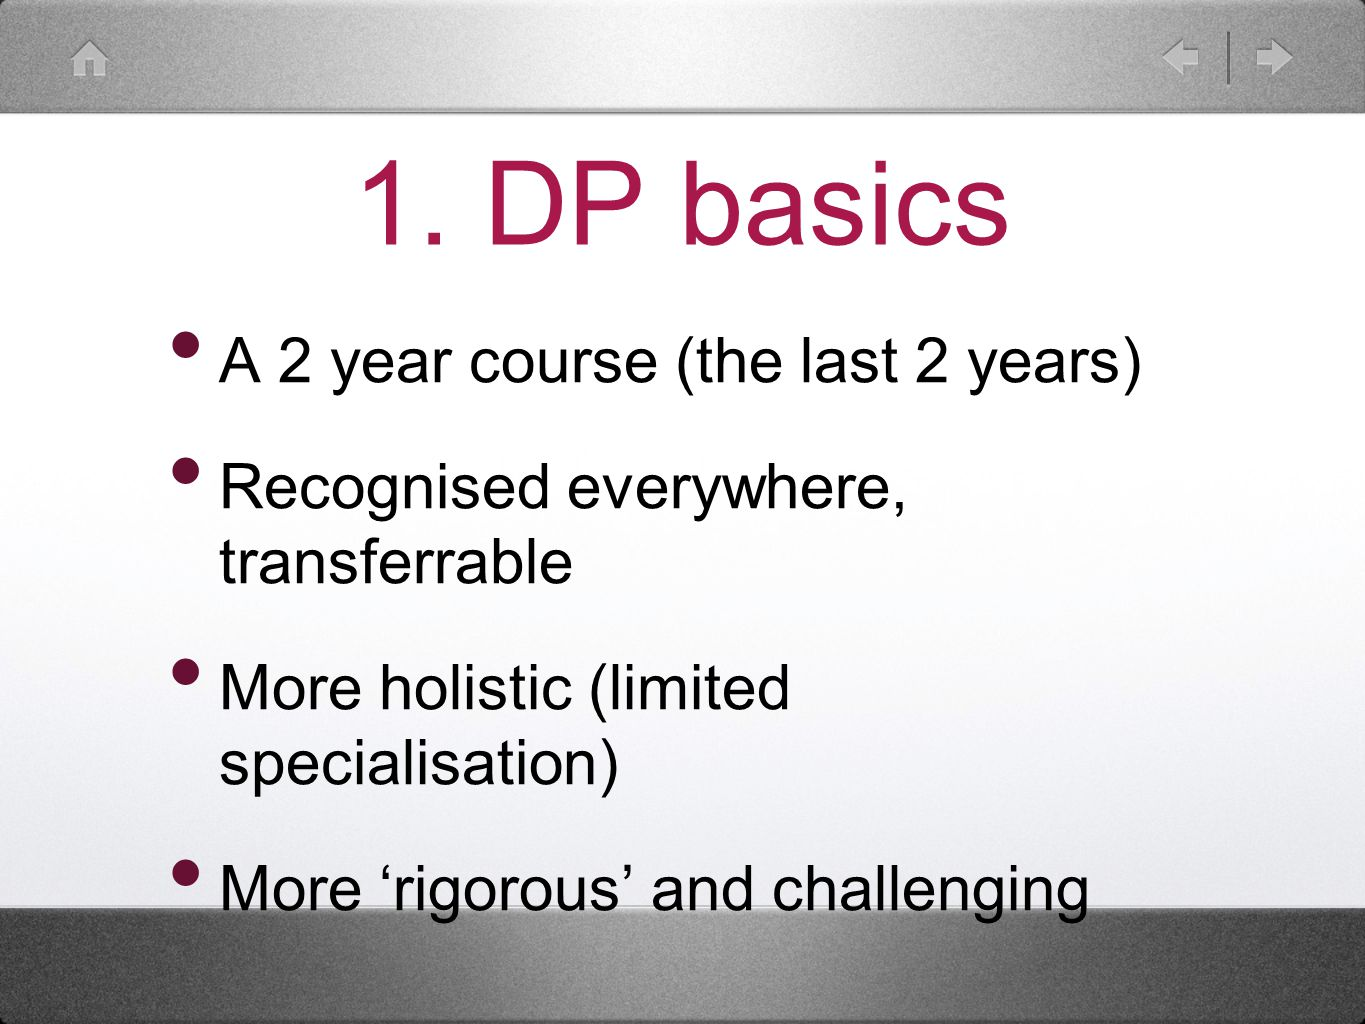 1. DP basics A 2 year course (the last 2 years) Recognised everywhere, transferrable More holistic (limited specialisation) More 'rigorous' and challe